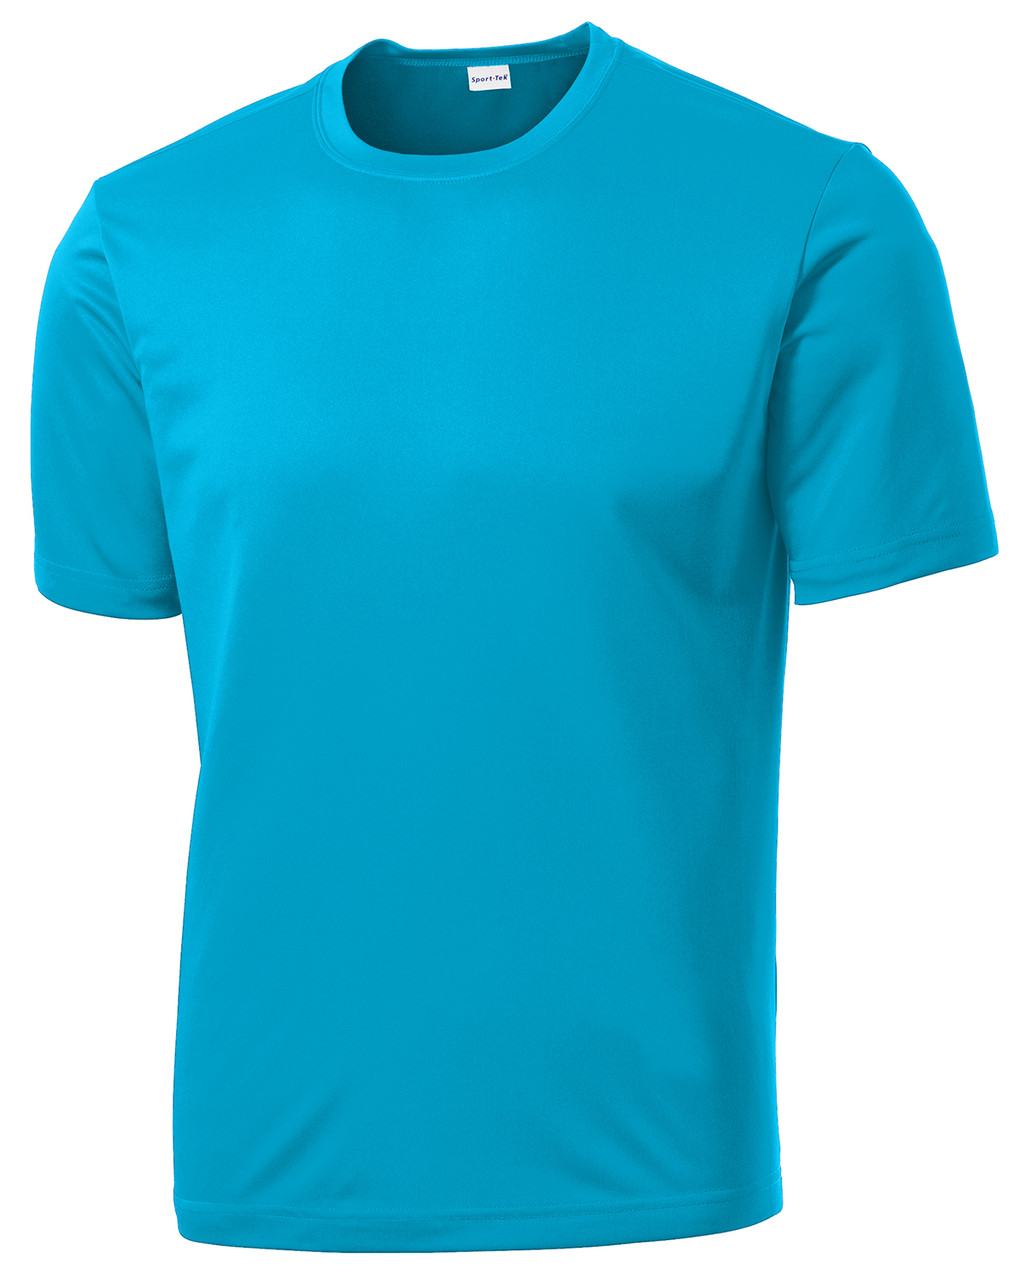 Atomic Blue PosiCharge Sport Tee 100% Polyester Moisture Wicking